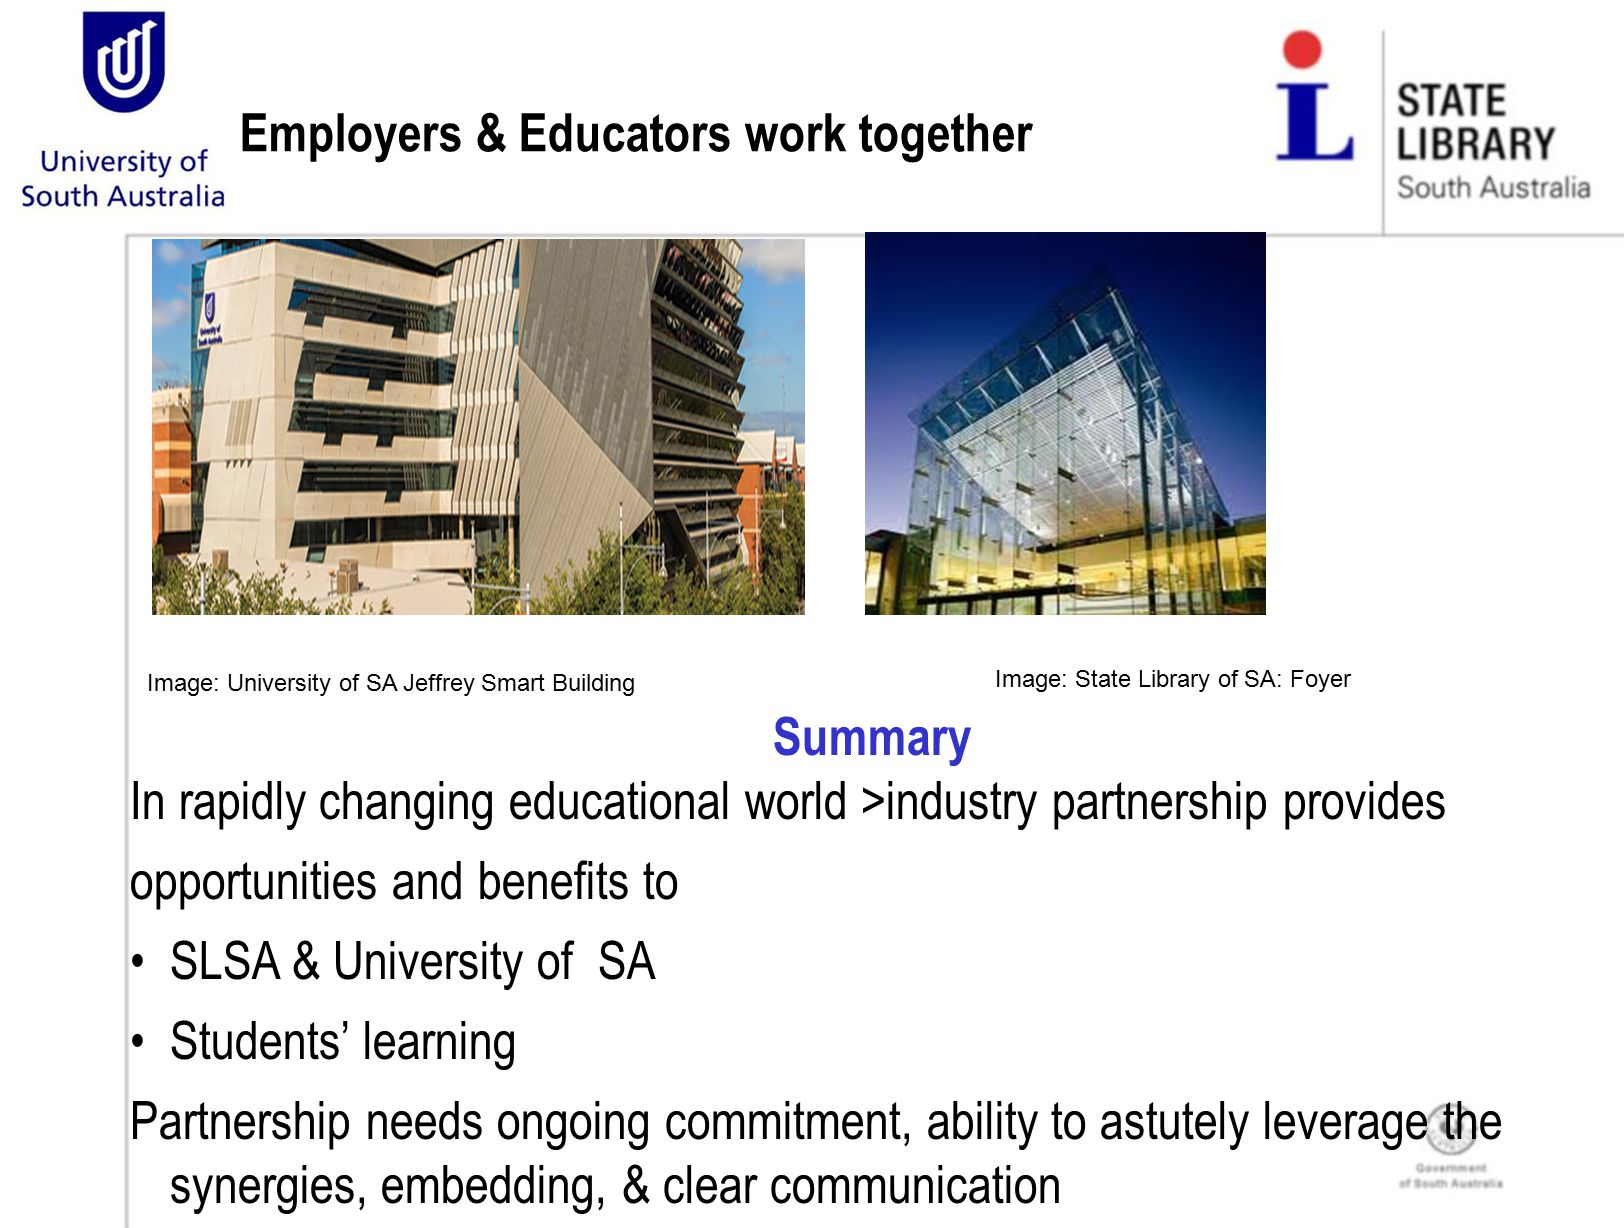 Summary In rapidly changing educational world >industry partnership provides opportunities and benefits to SLSA & University of SA Students' learning Partnership needs ongoing commitment, ability to astutely leverage the synergies, embedding, & clear communication Employers & Educators work together Image: University of SA Jeffrey Smart Building Image: State Library of SA: Foyer